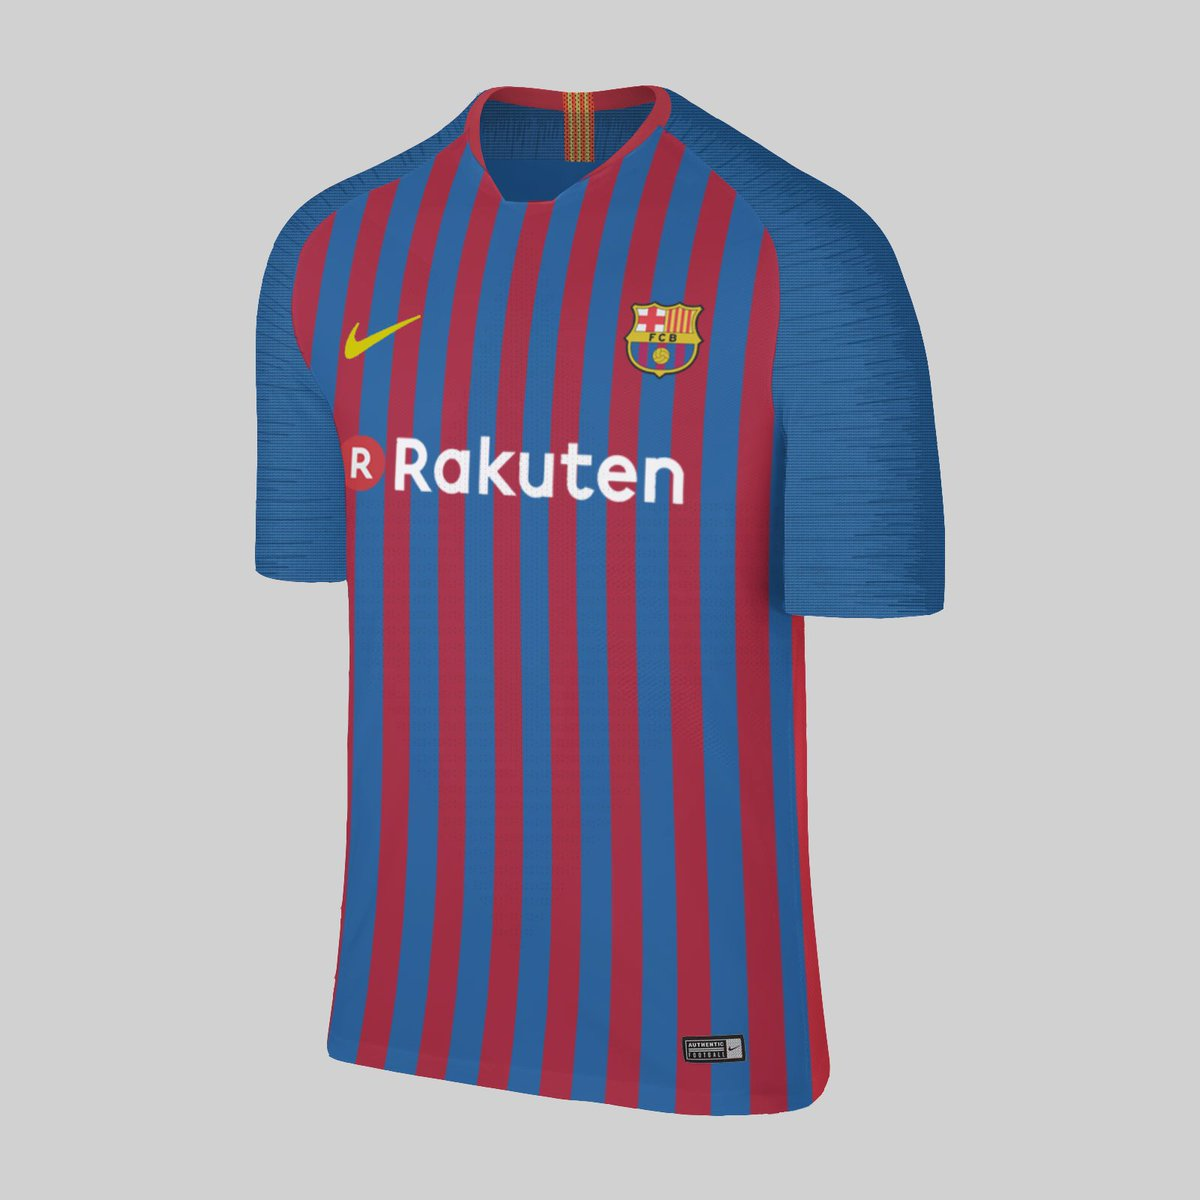 29ba8fc9a Nike Barcelona Home and Away Jersey 2018 Concept ○Based on Nike Aeroswift  2018 2019 Template  Footy Headlines  oneblacktie  sldesigns02  casakeros ...